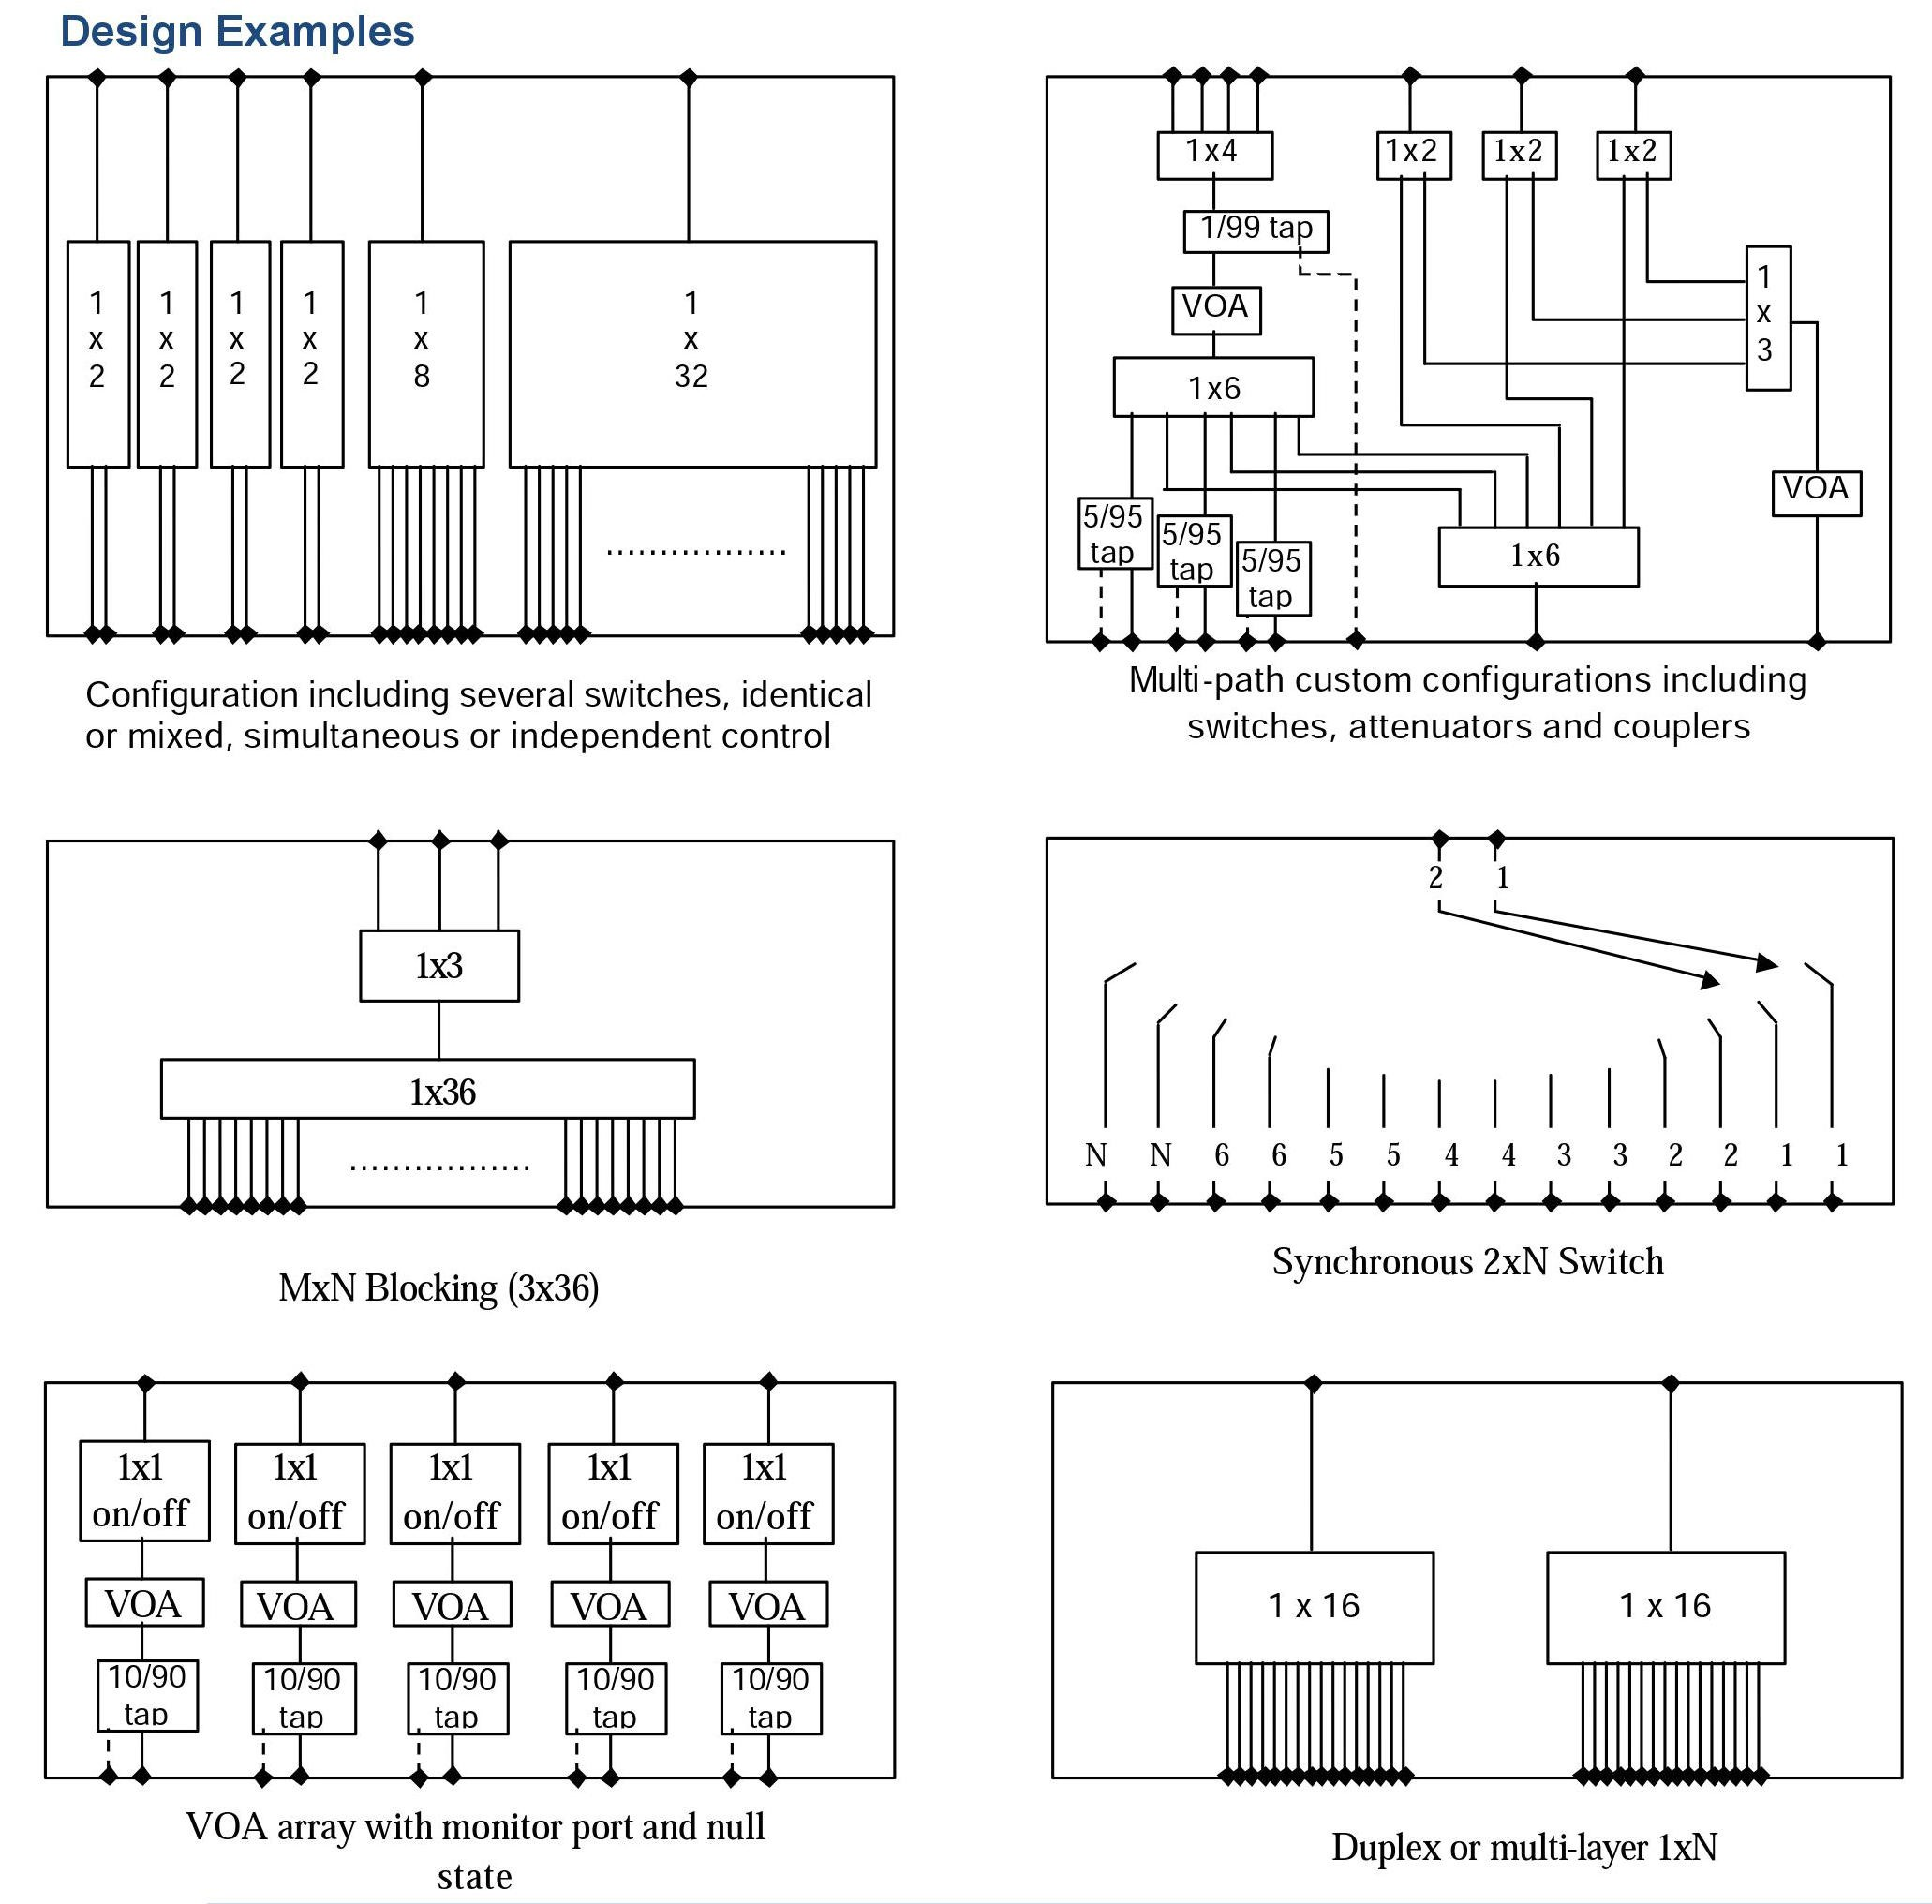 3.5 Custom Chassis Optical Switch System - Design Examples